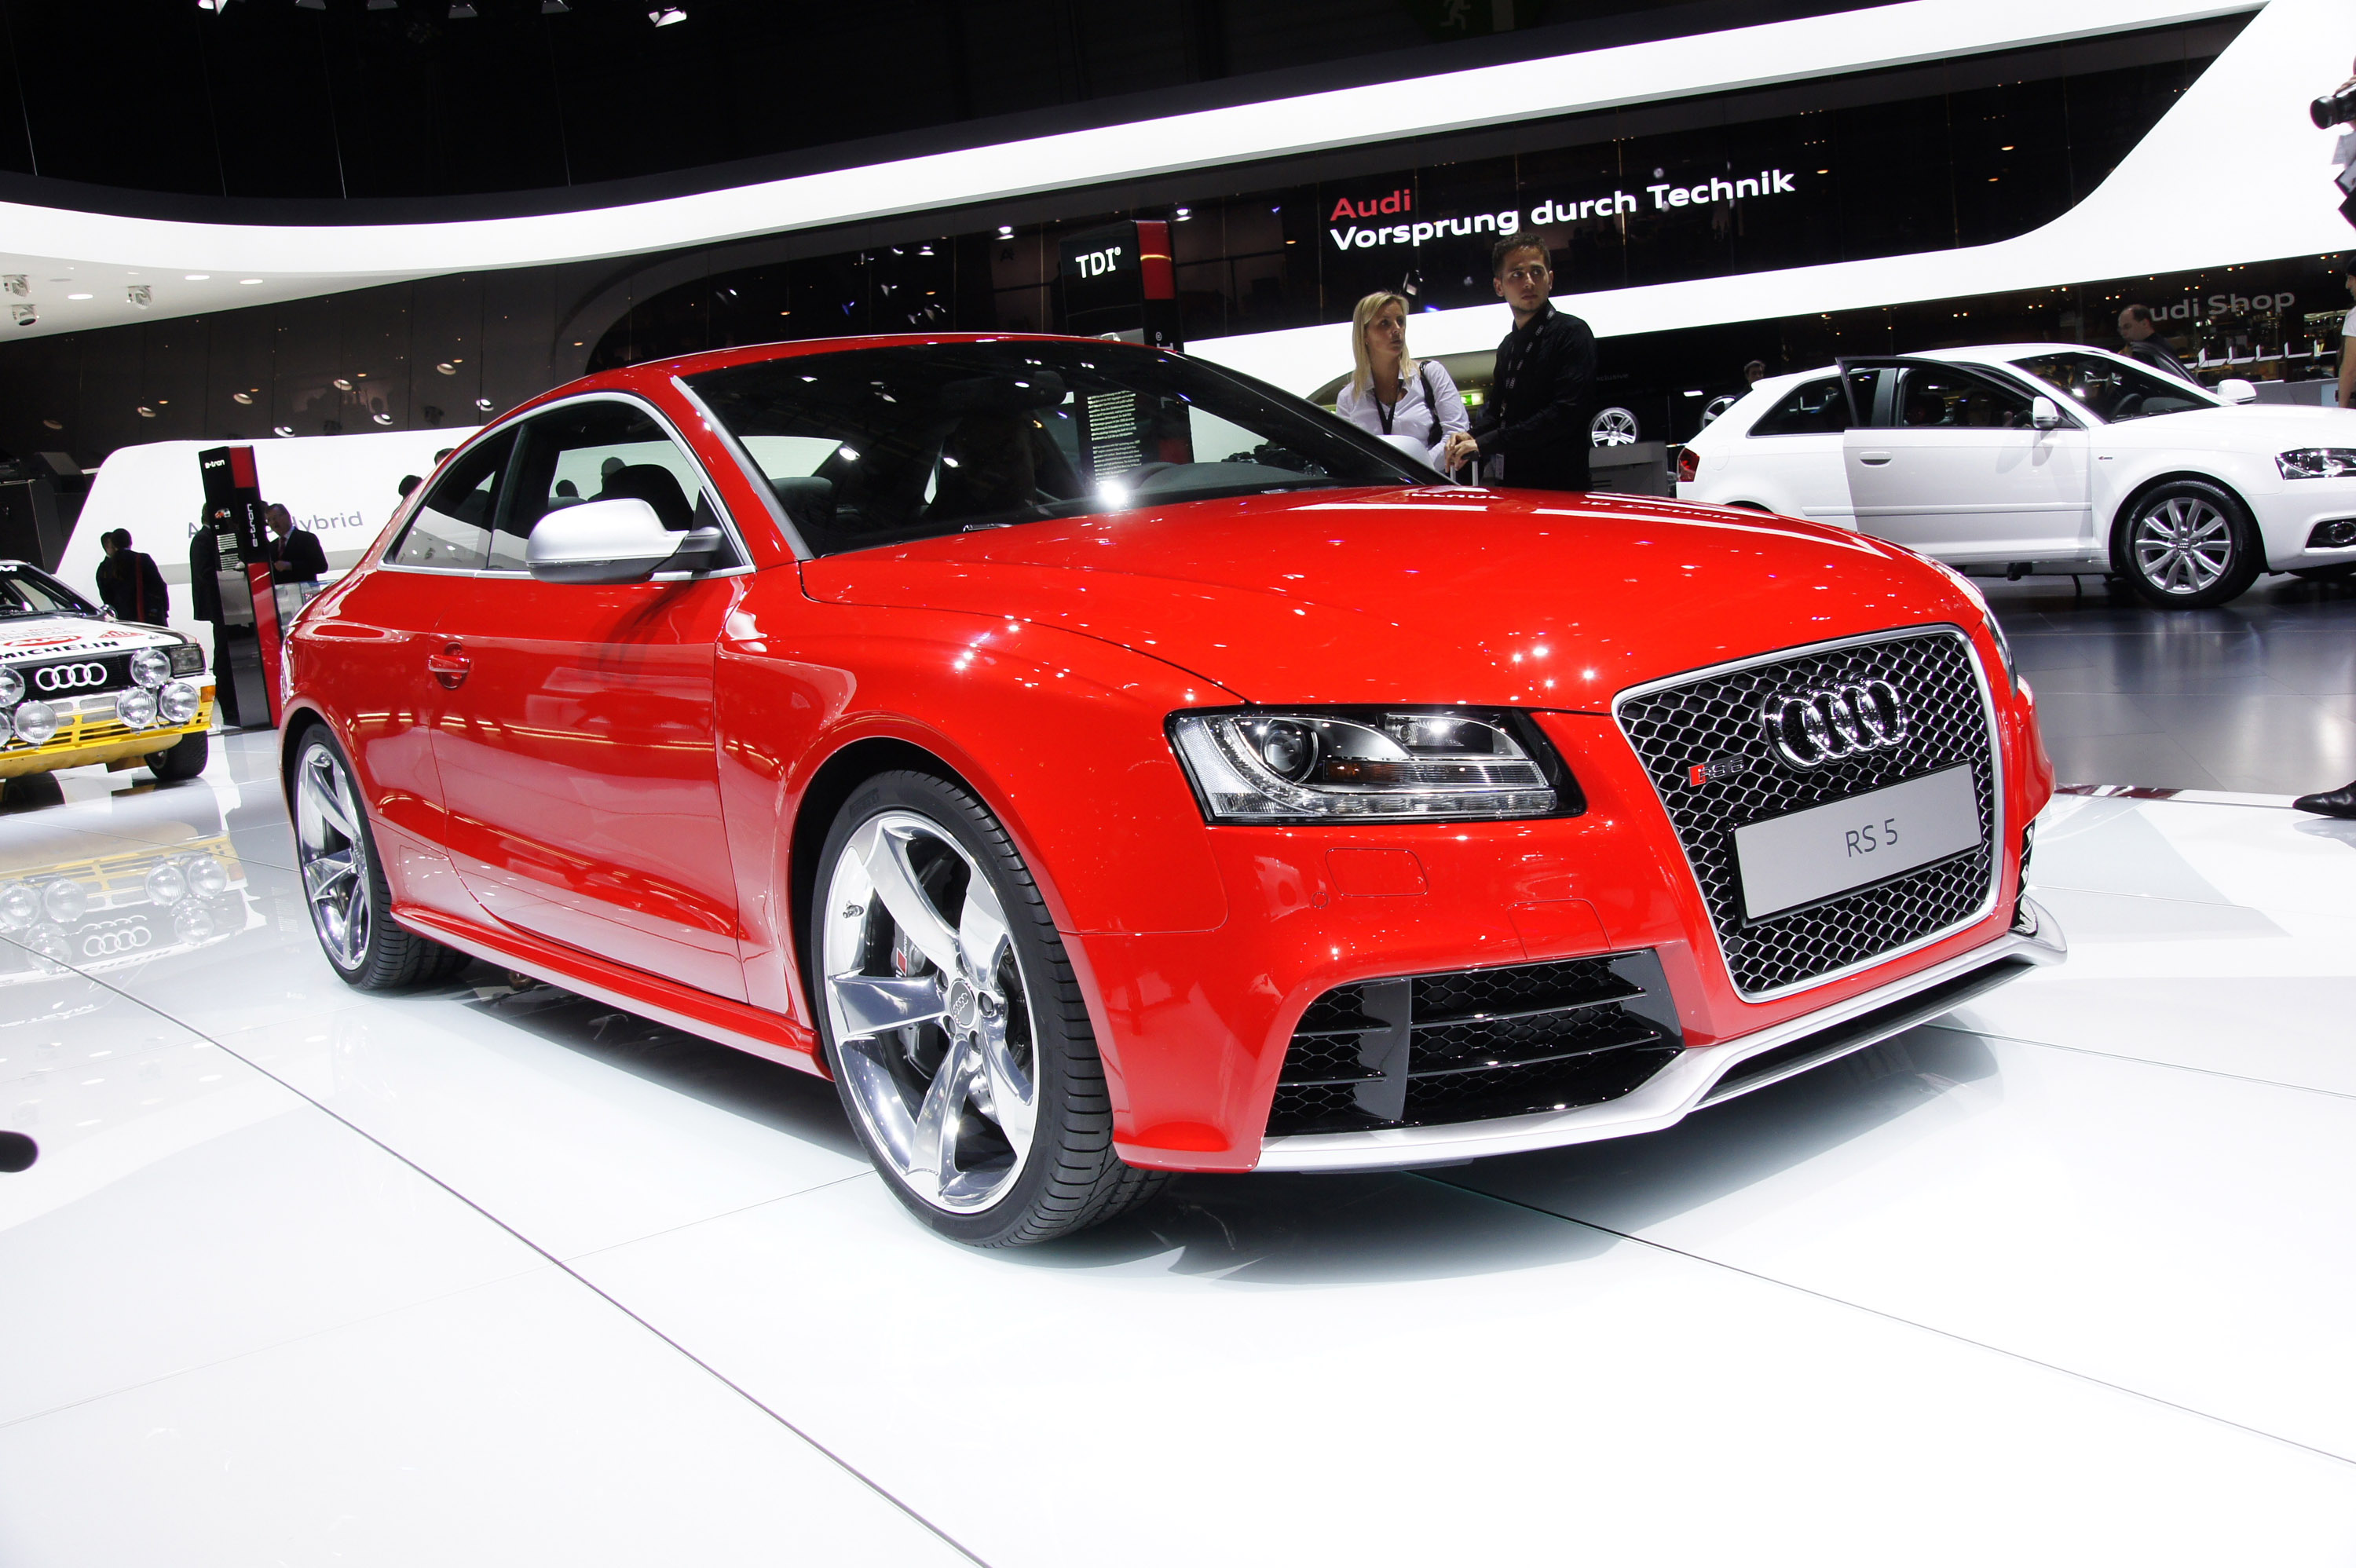 audi rs5 geneva 2010 picture 35295. Black Bedroom Furniture Sets. Home Design Ideas